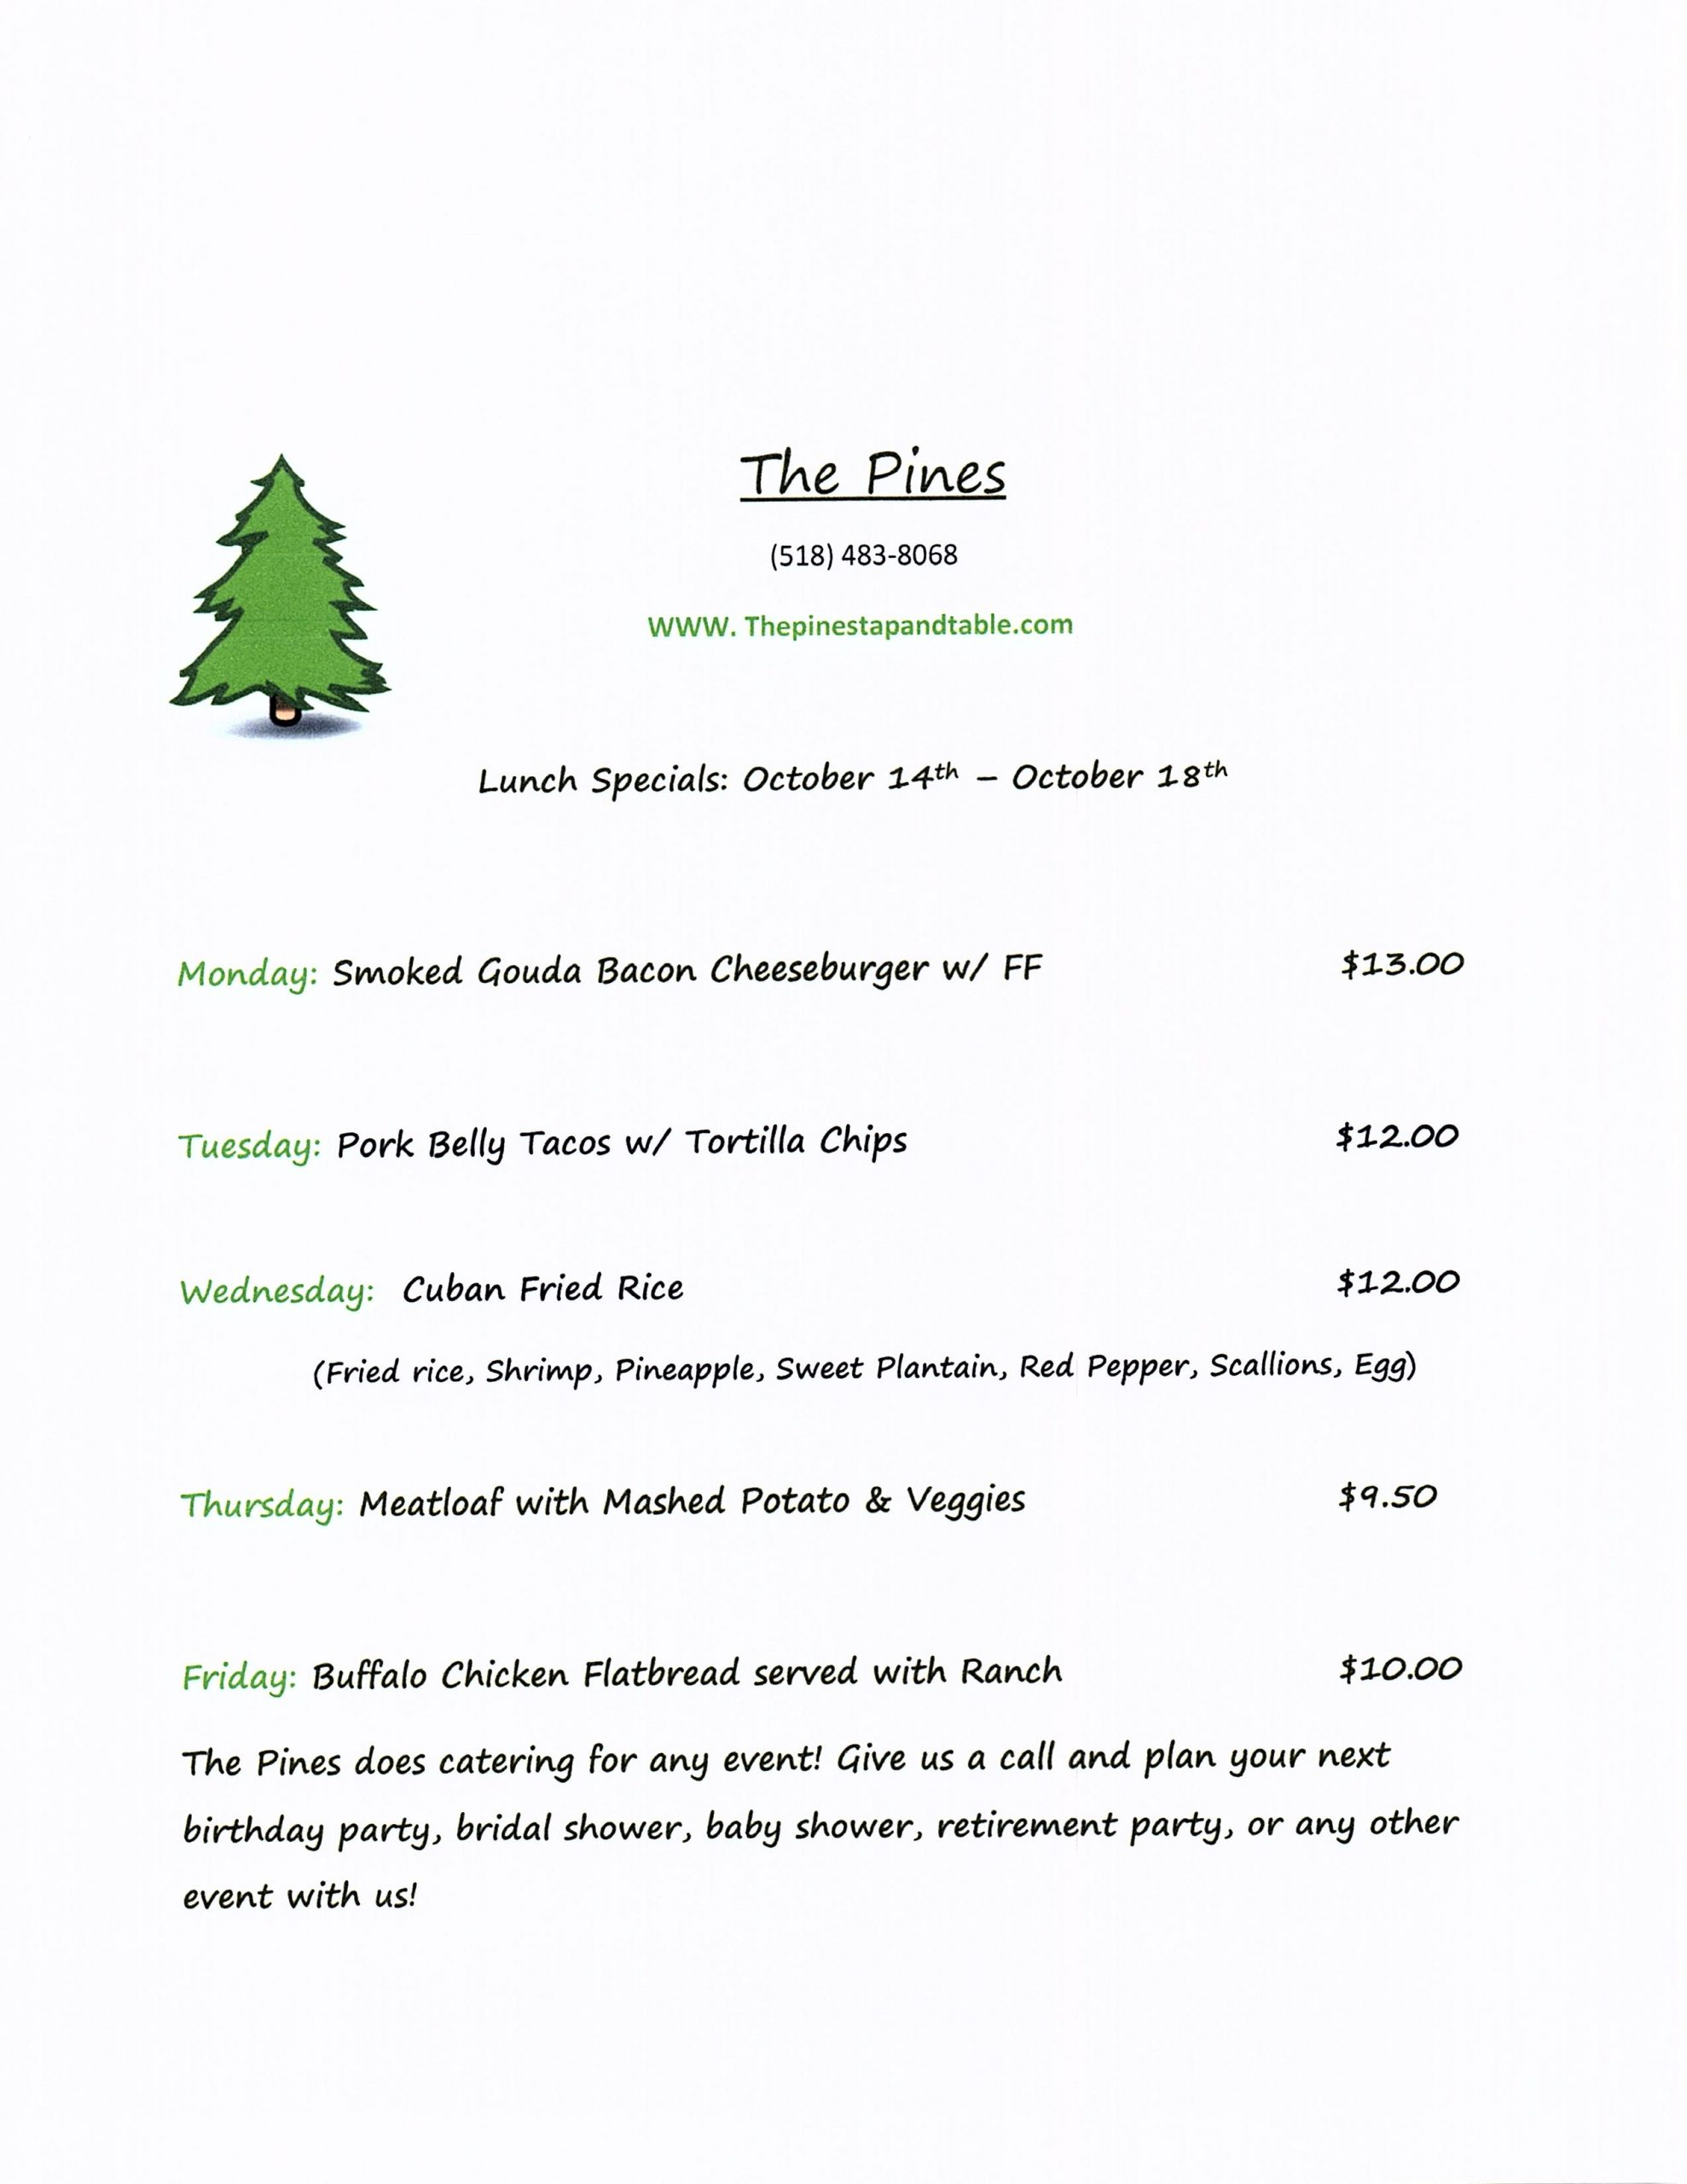 The Pines Lunch Special Oct 21